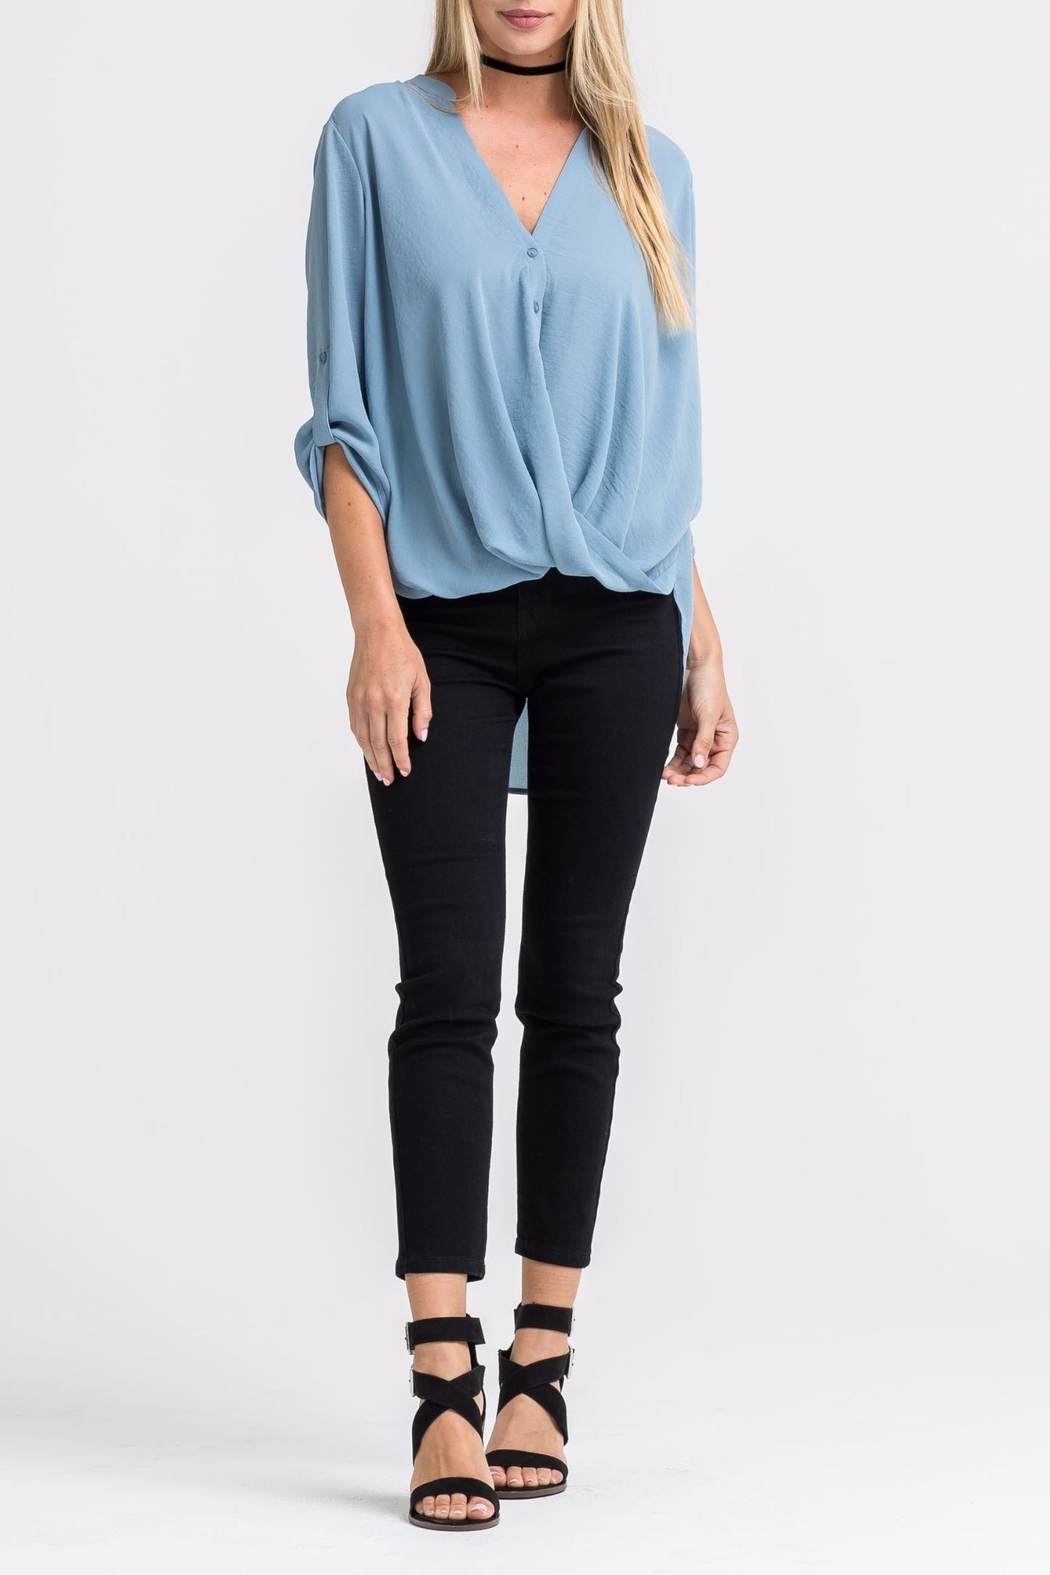 Lush Blue Twist-Front Shirt - Main Image